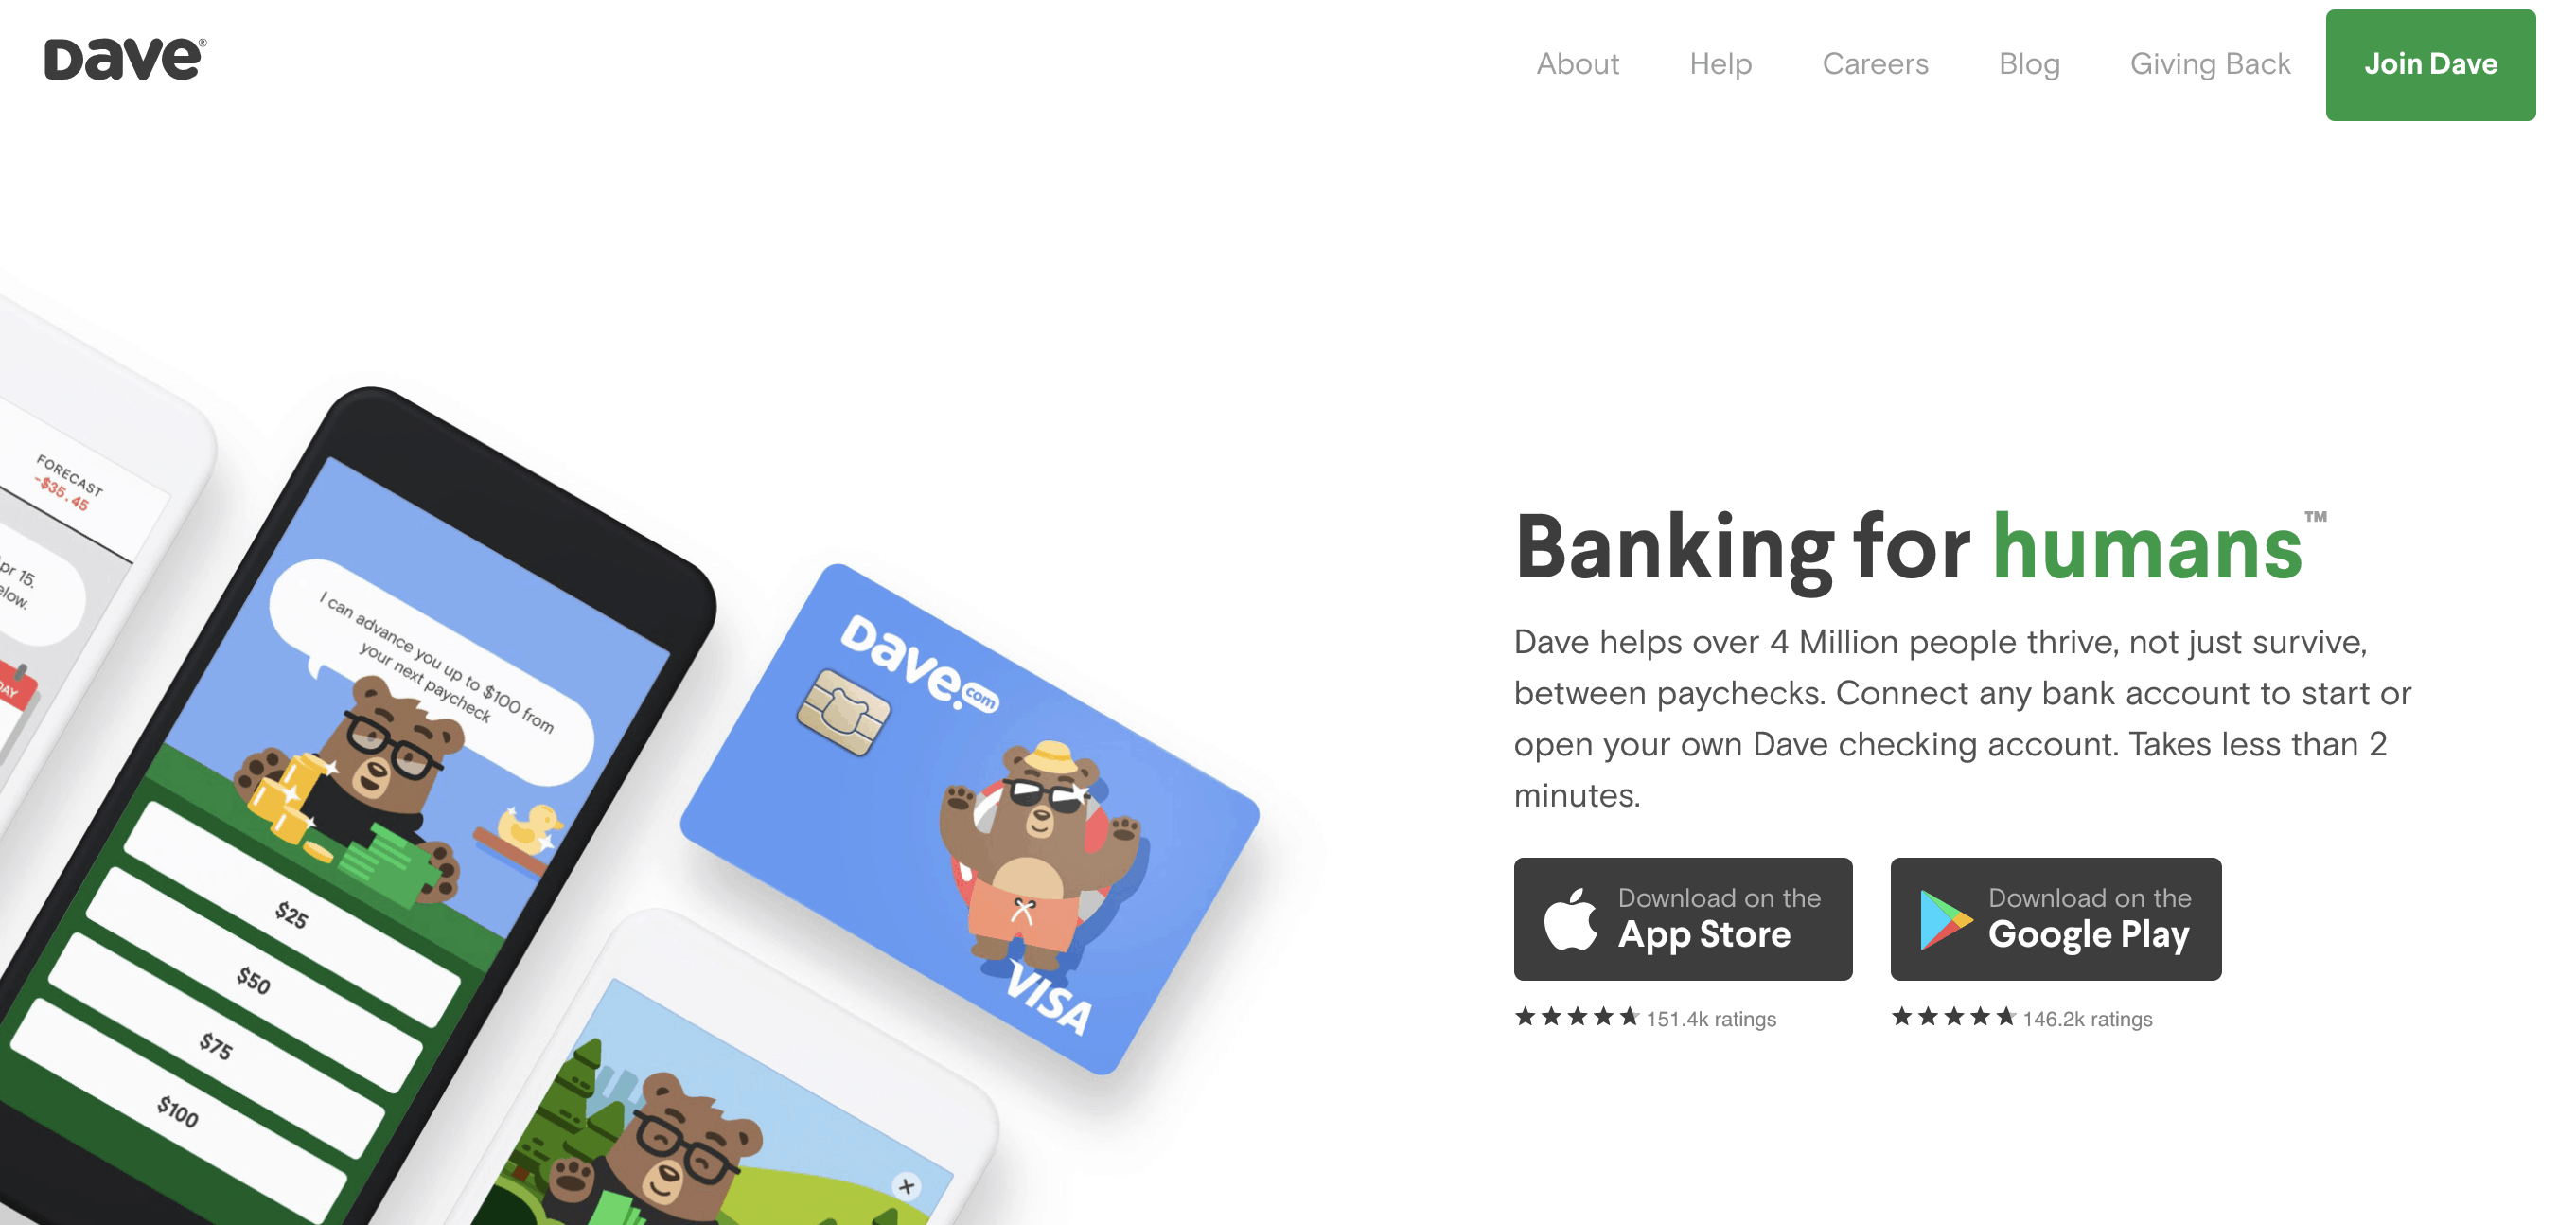 Dave Banking Home Page